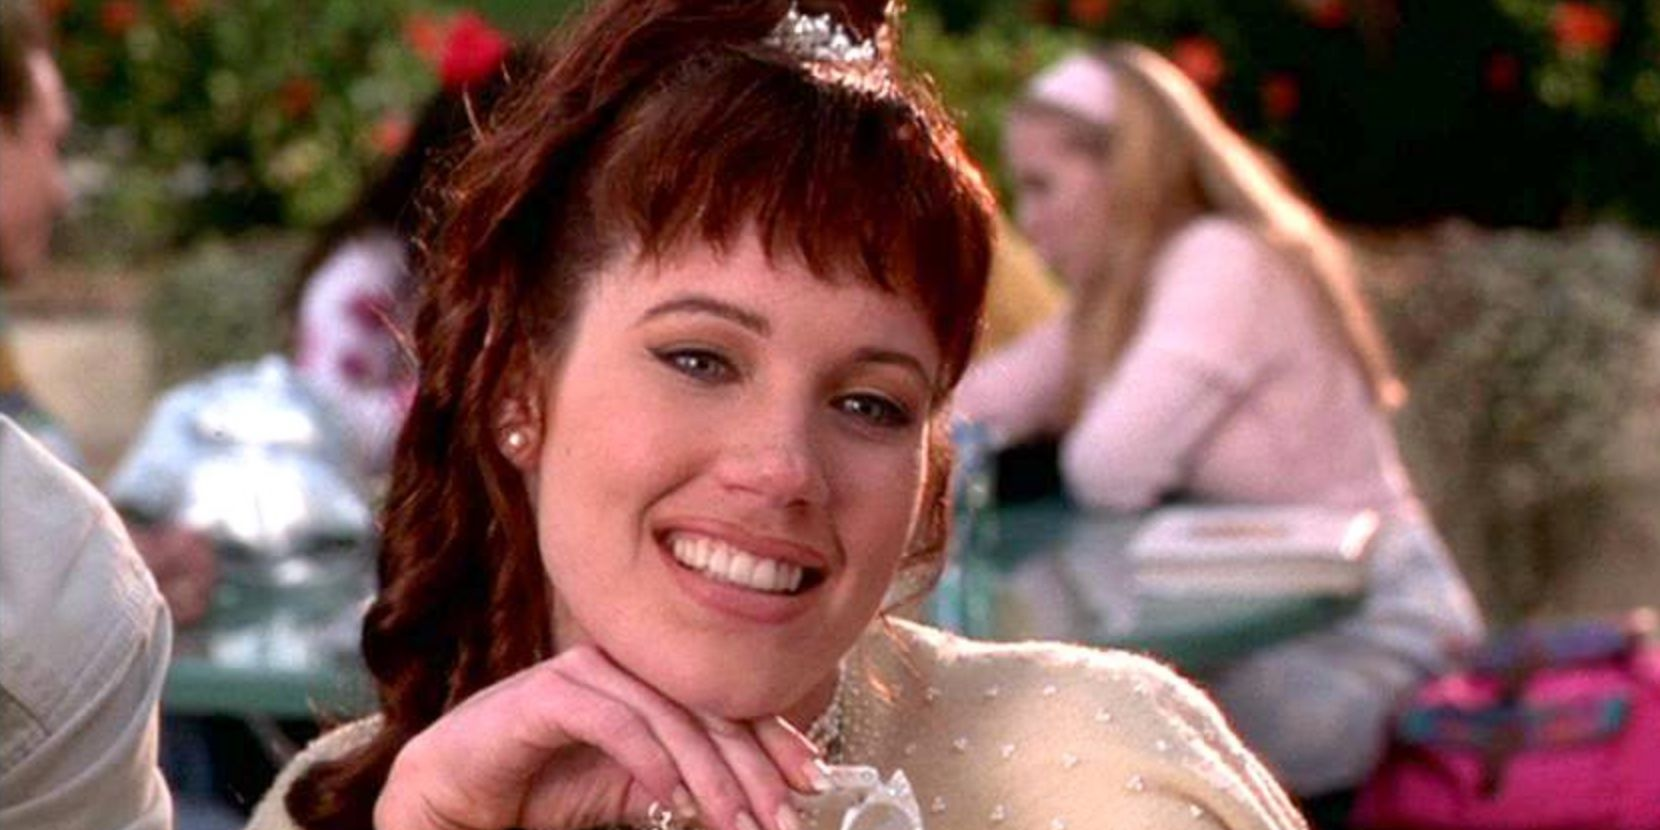 Clueless Characters Ranked From Least To Most Likely To Survive The Hunger Games